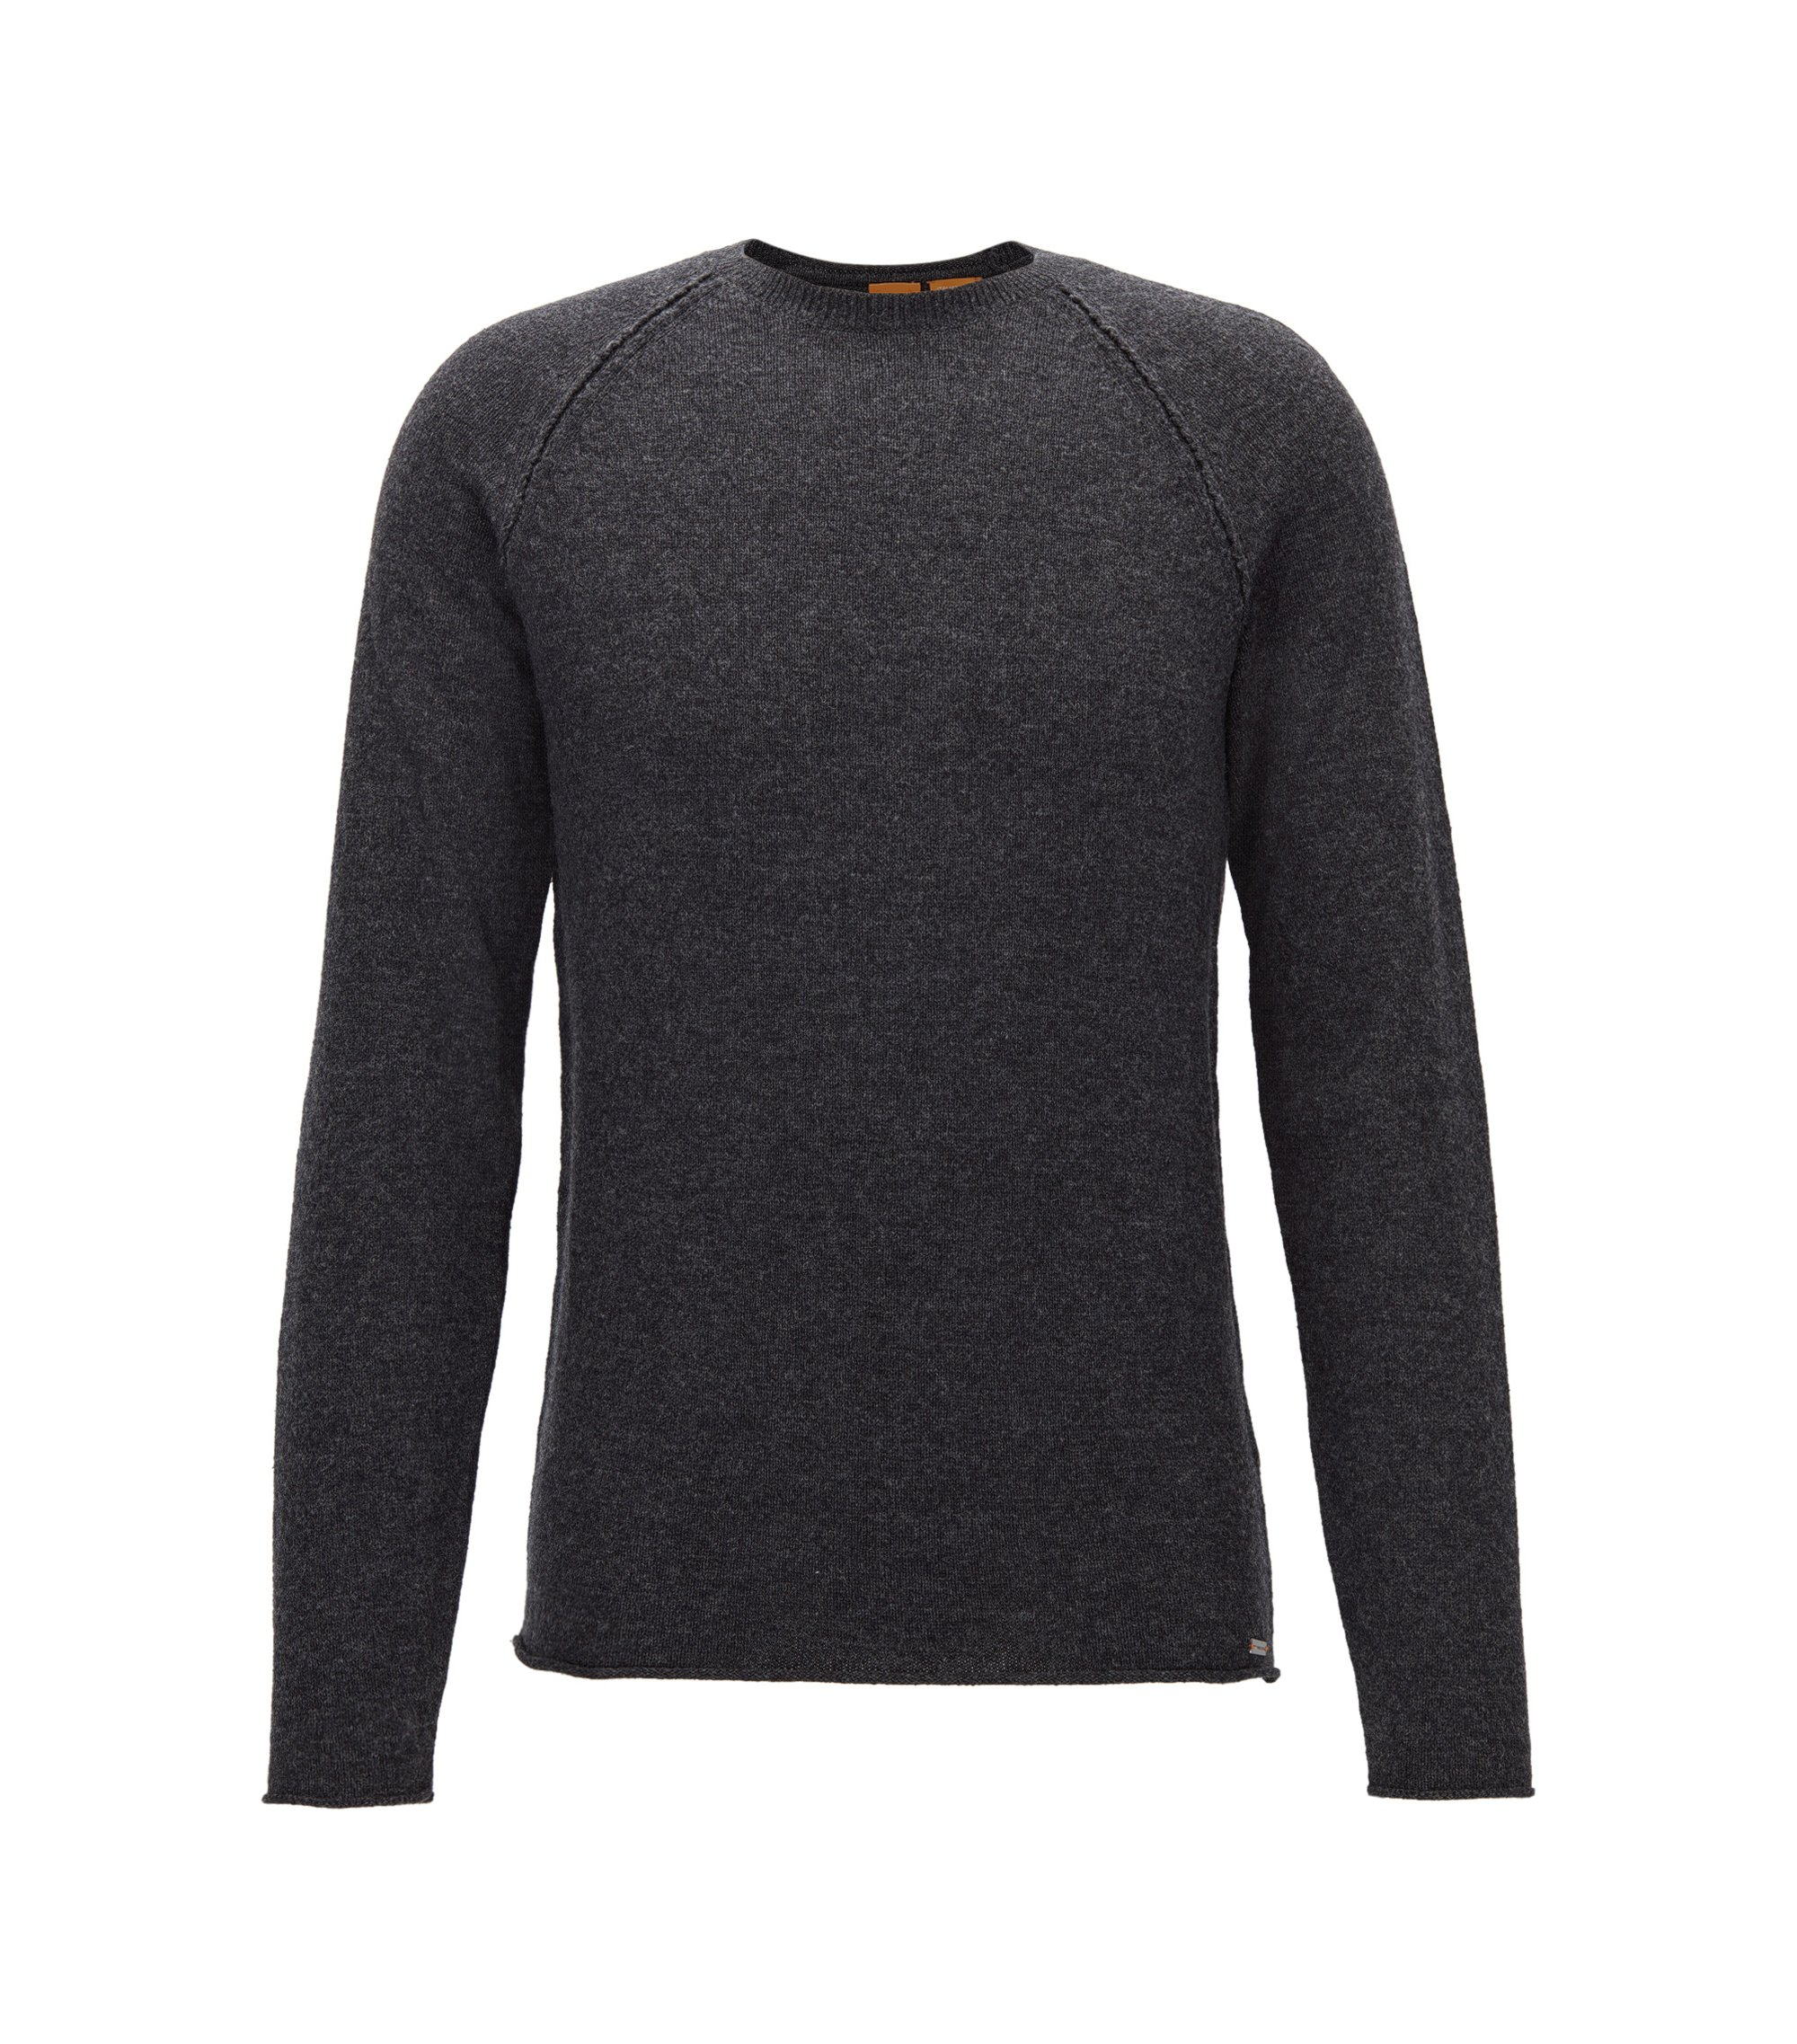 Wool-Cotton Blend Sweater | Kohedge, Dark Grey